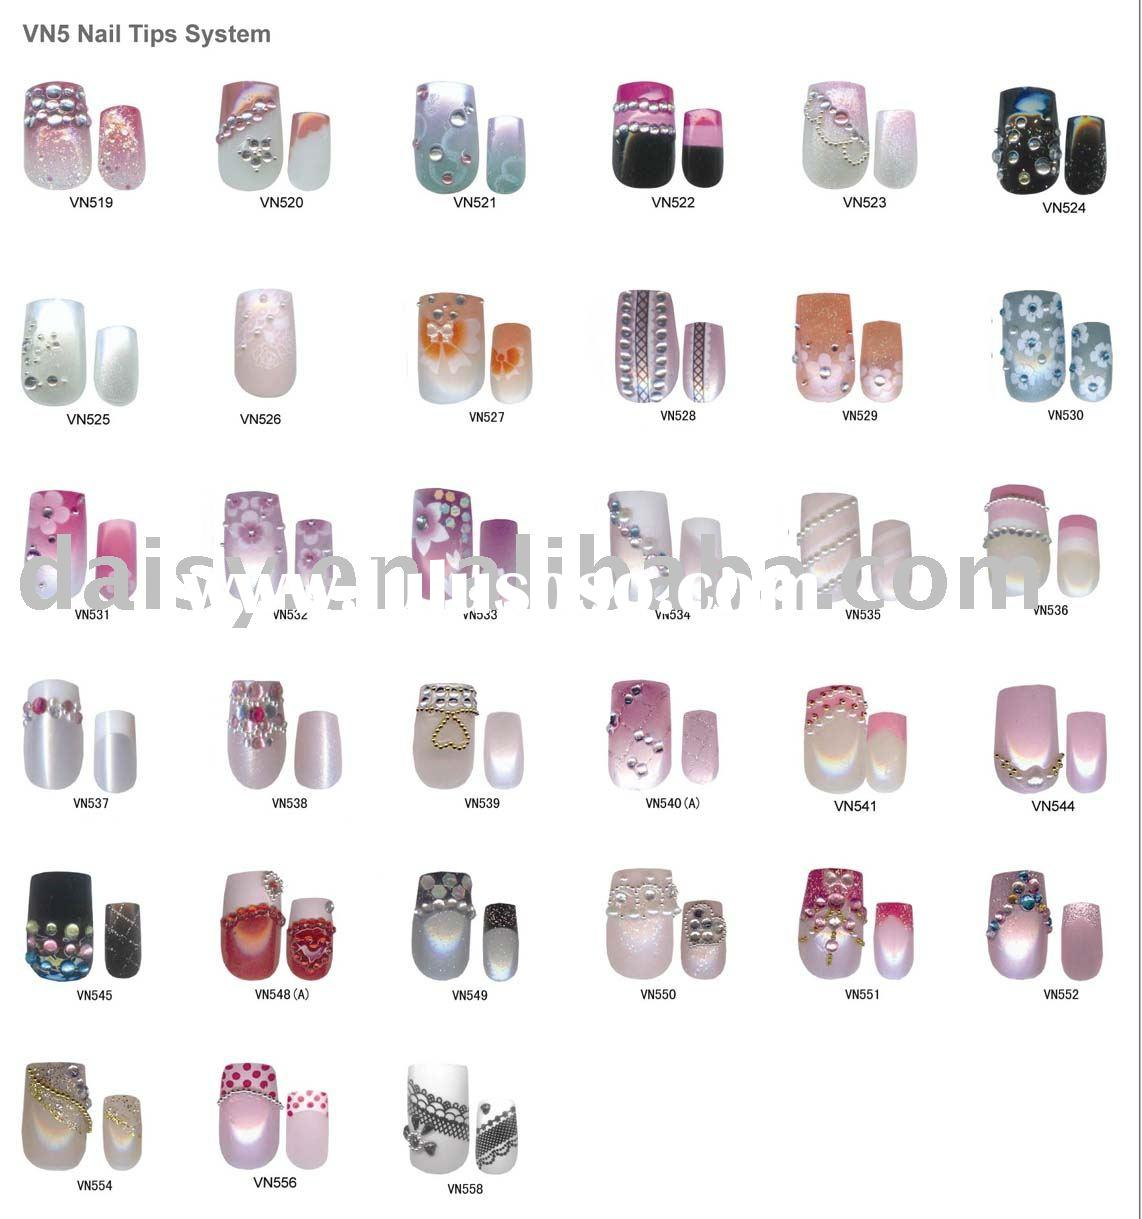 Nail Art, Nail Tip, Designed Nail Tips